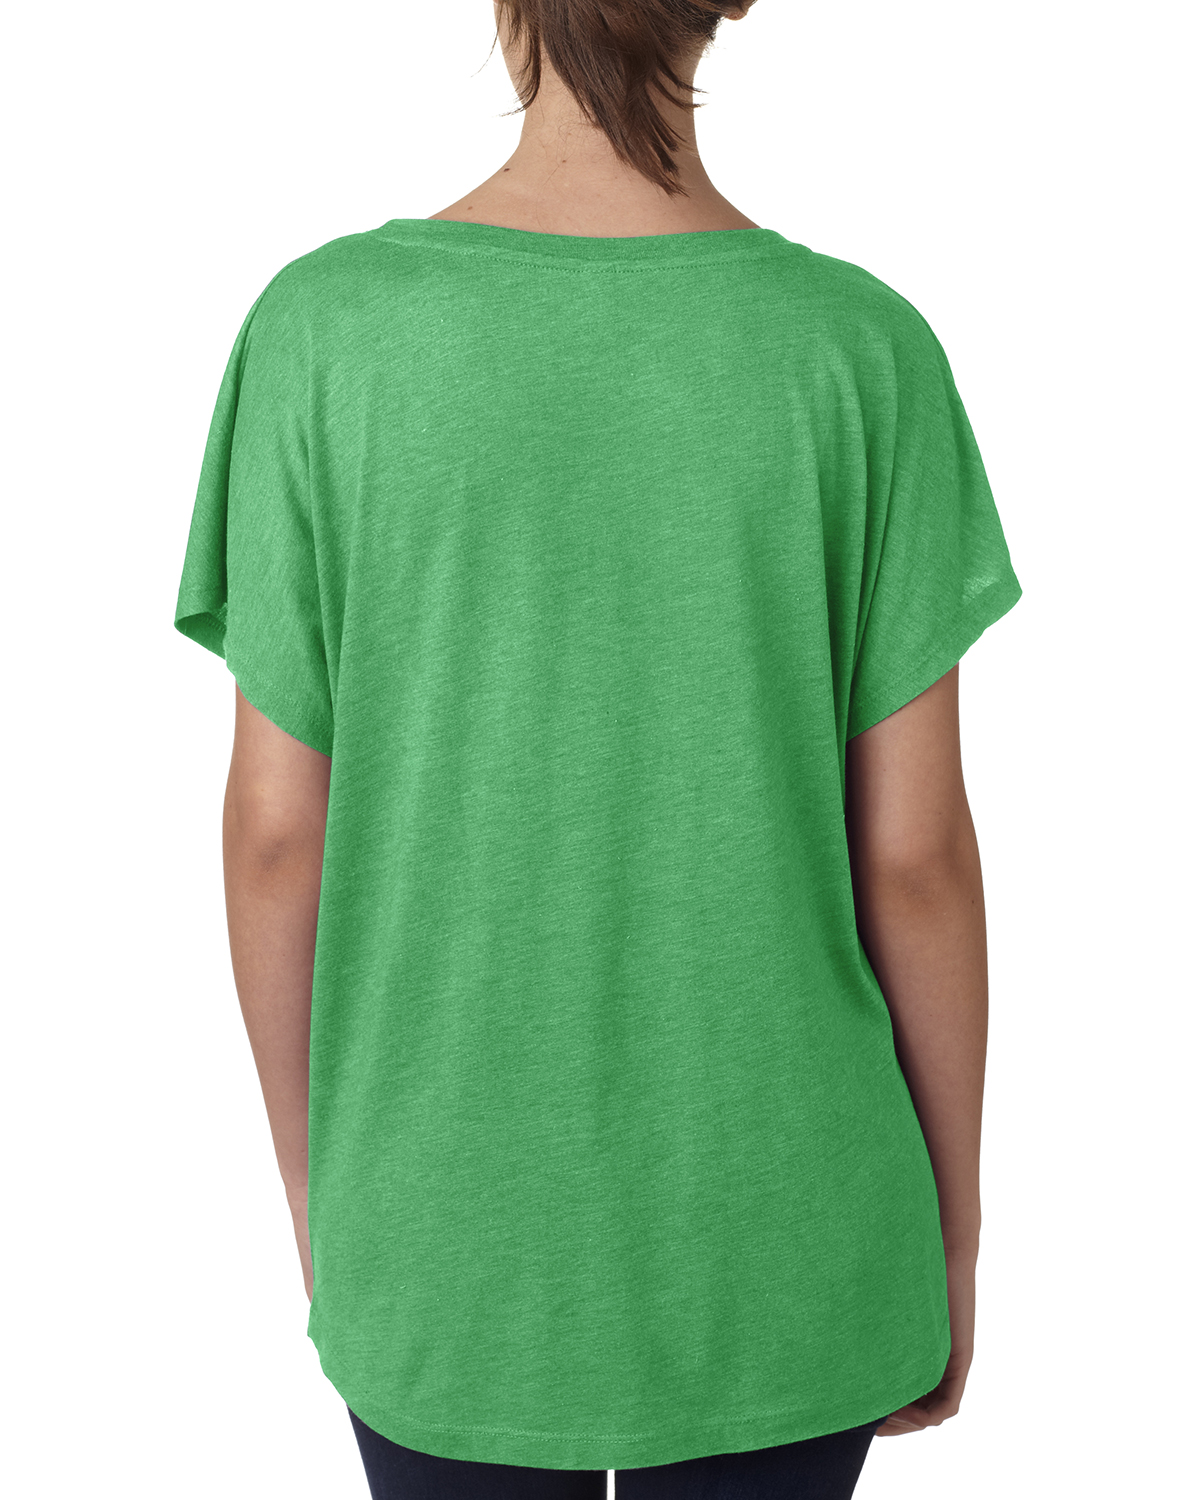 NEW-Next-Level-Junior-Fit-Triblend-Dolman-Sleeve-Relexed-Fit-T-Shirt-B-6760 thumbnail 3